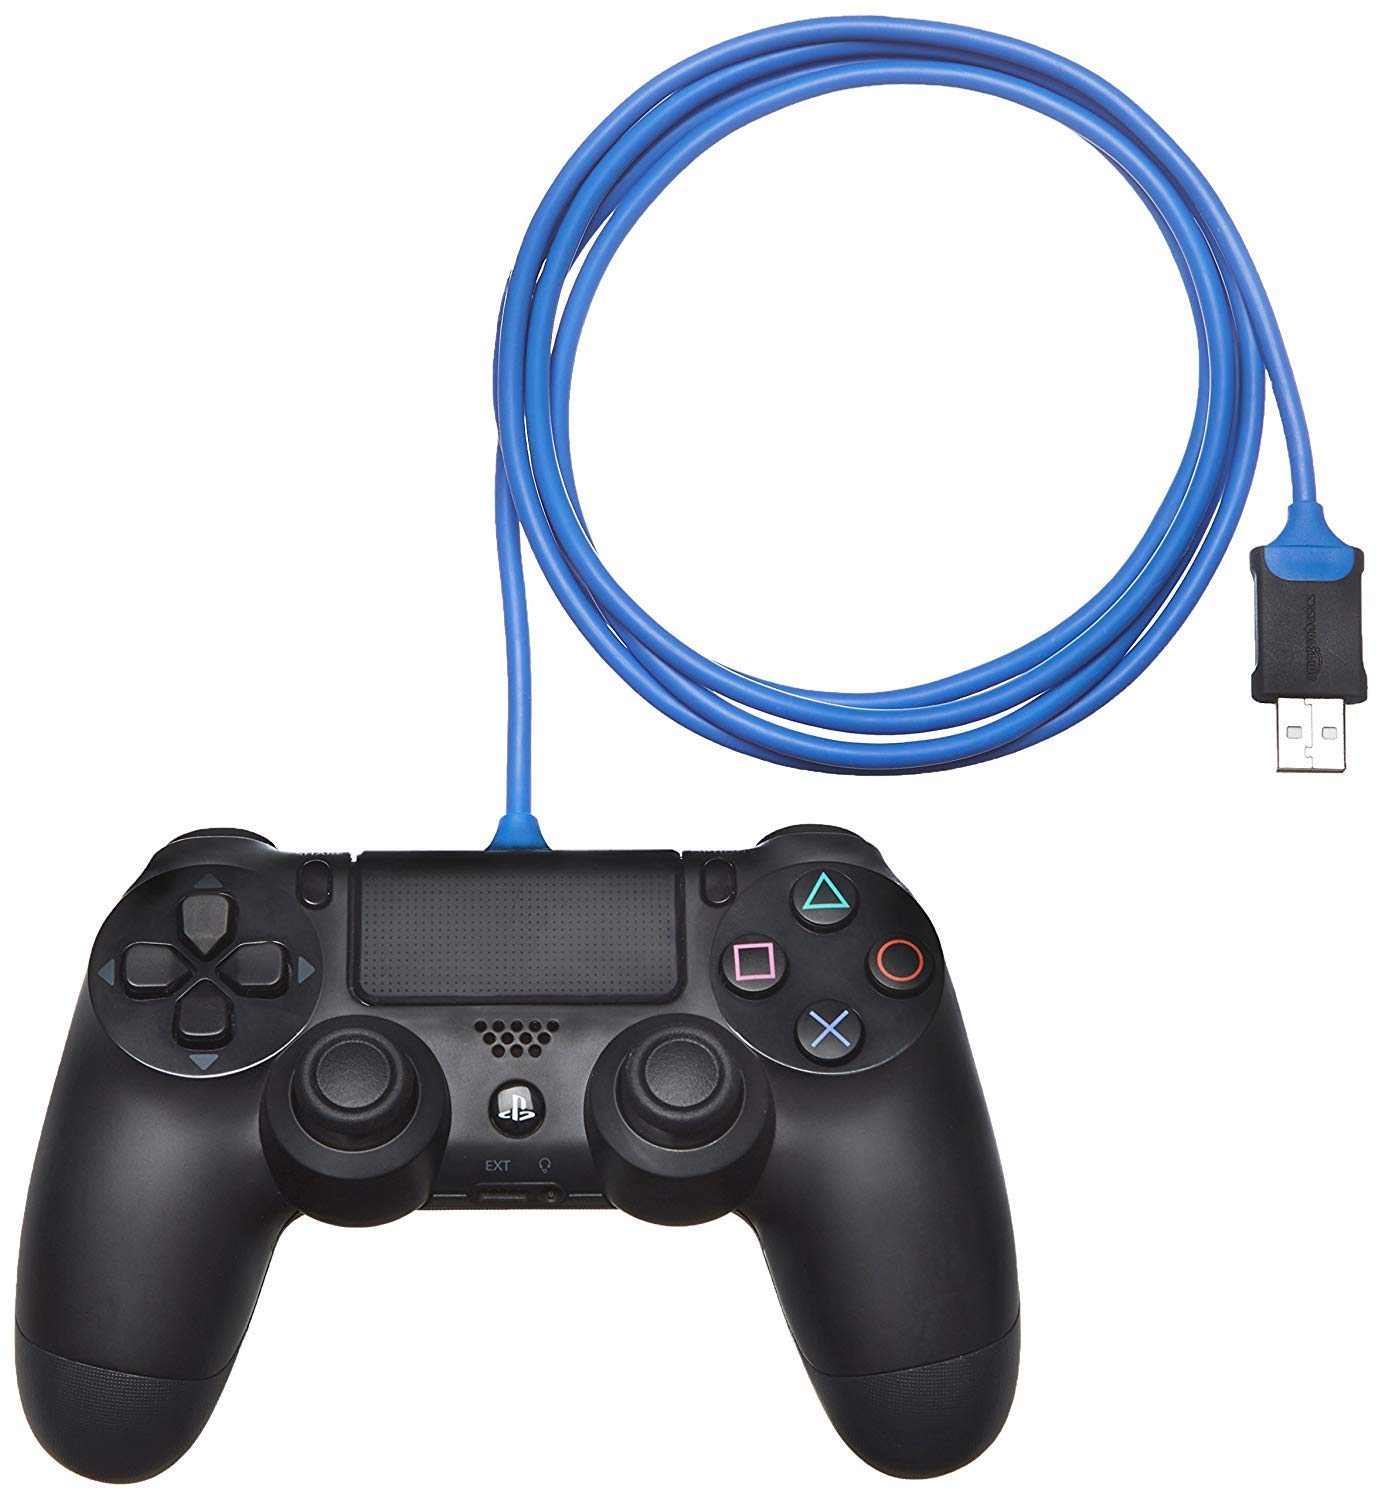 Amazon Basics PlayStation 4 Controller Charging Cable - 6 Foot, Blue